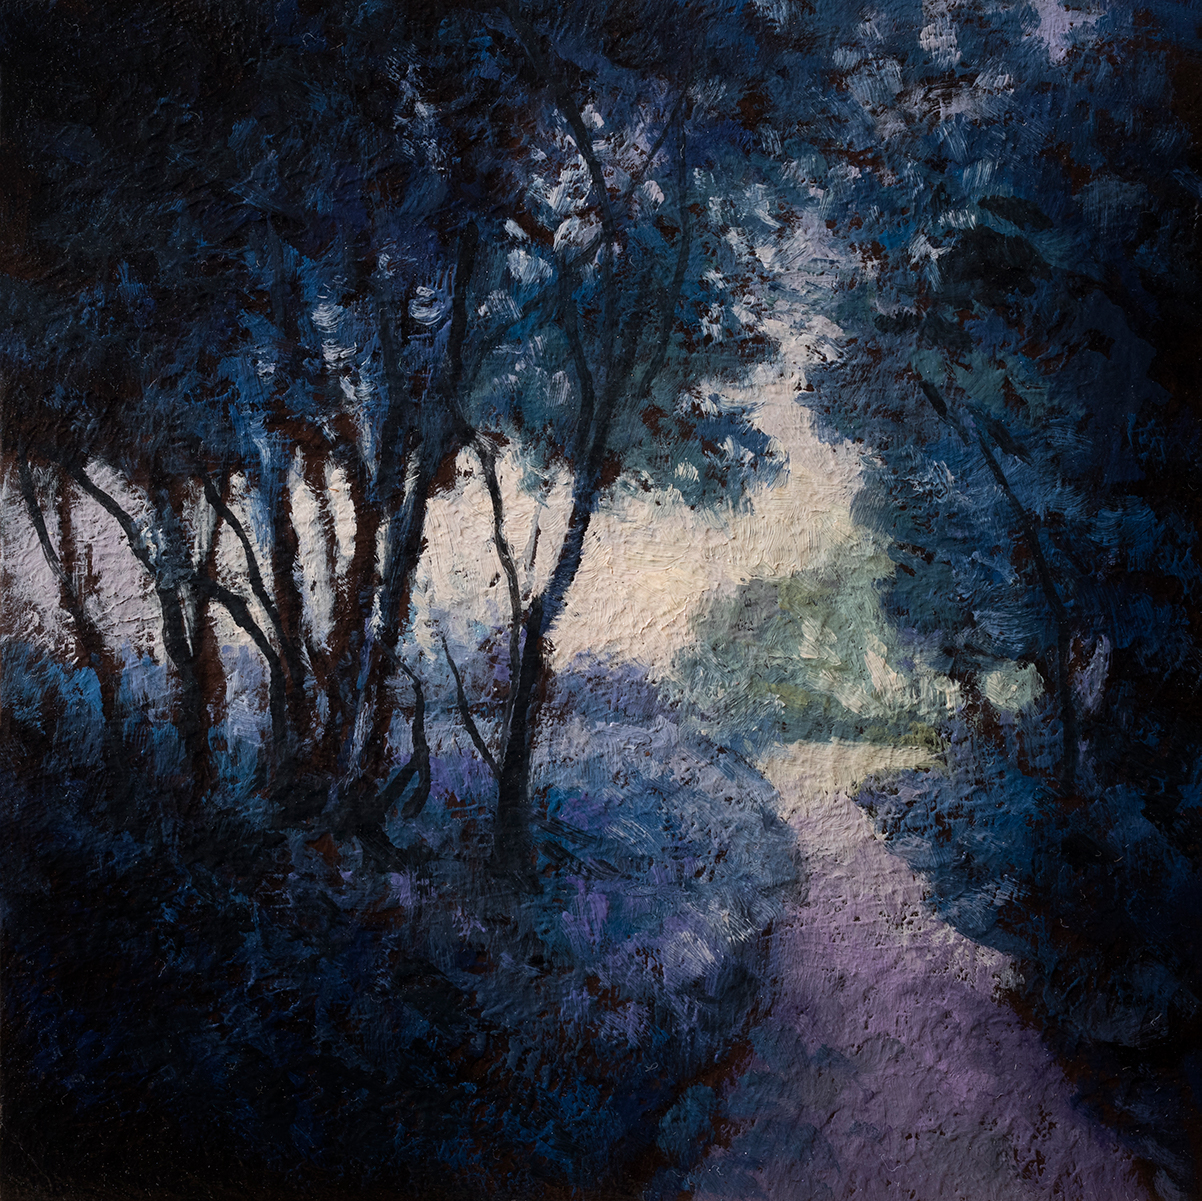 Morning Path by M Francis McCarthy - 6x6 Oil on Wood Panel